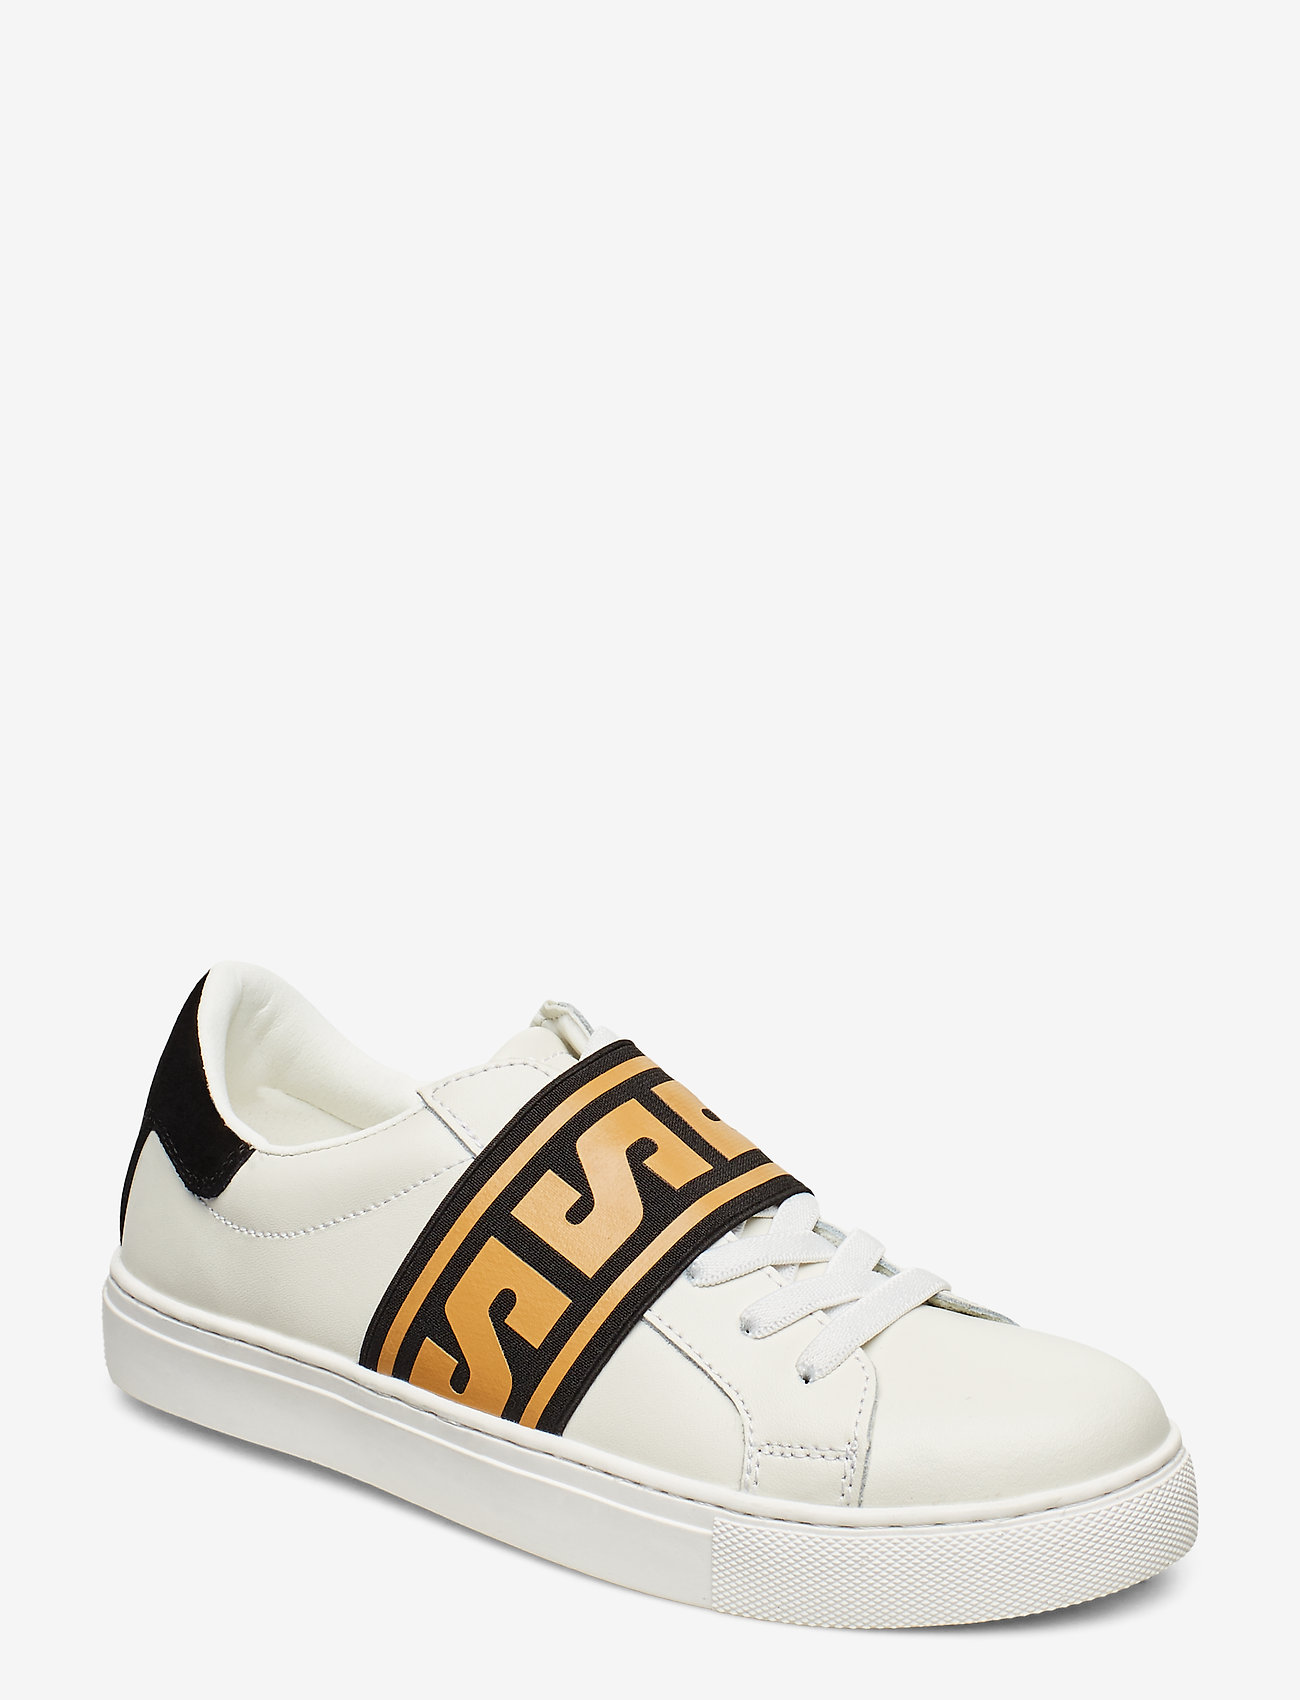 Sofie Schnoor - Shoe - lave sneakers - white - 0